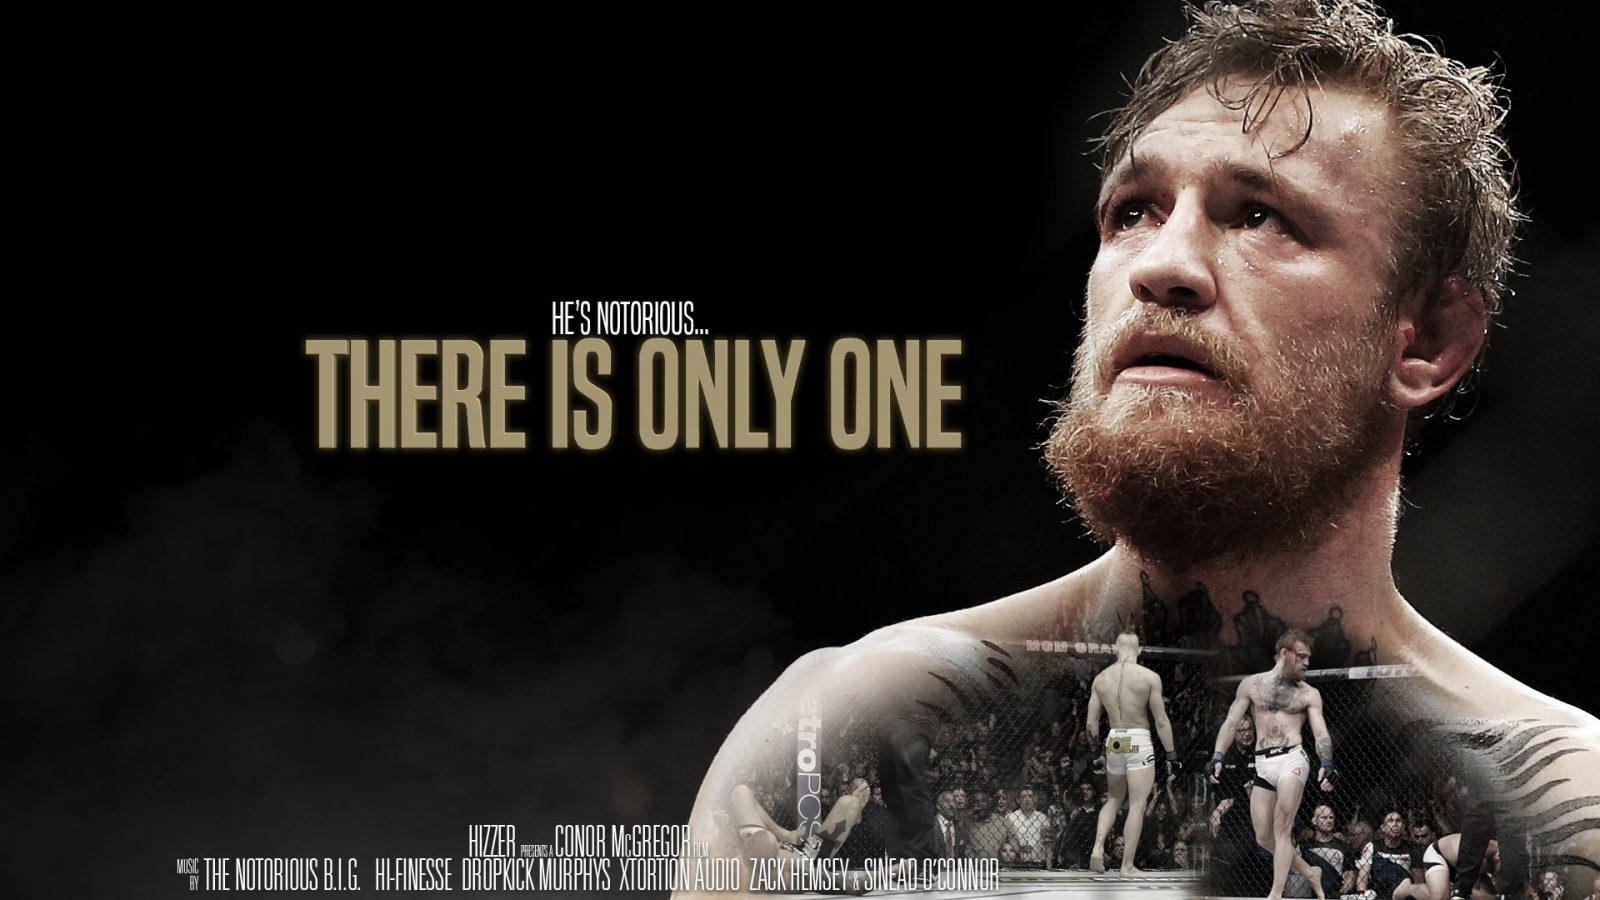 conor-mcgregor-there-is-only one